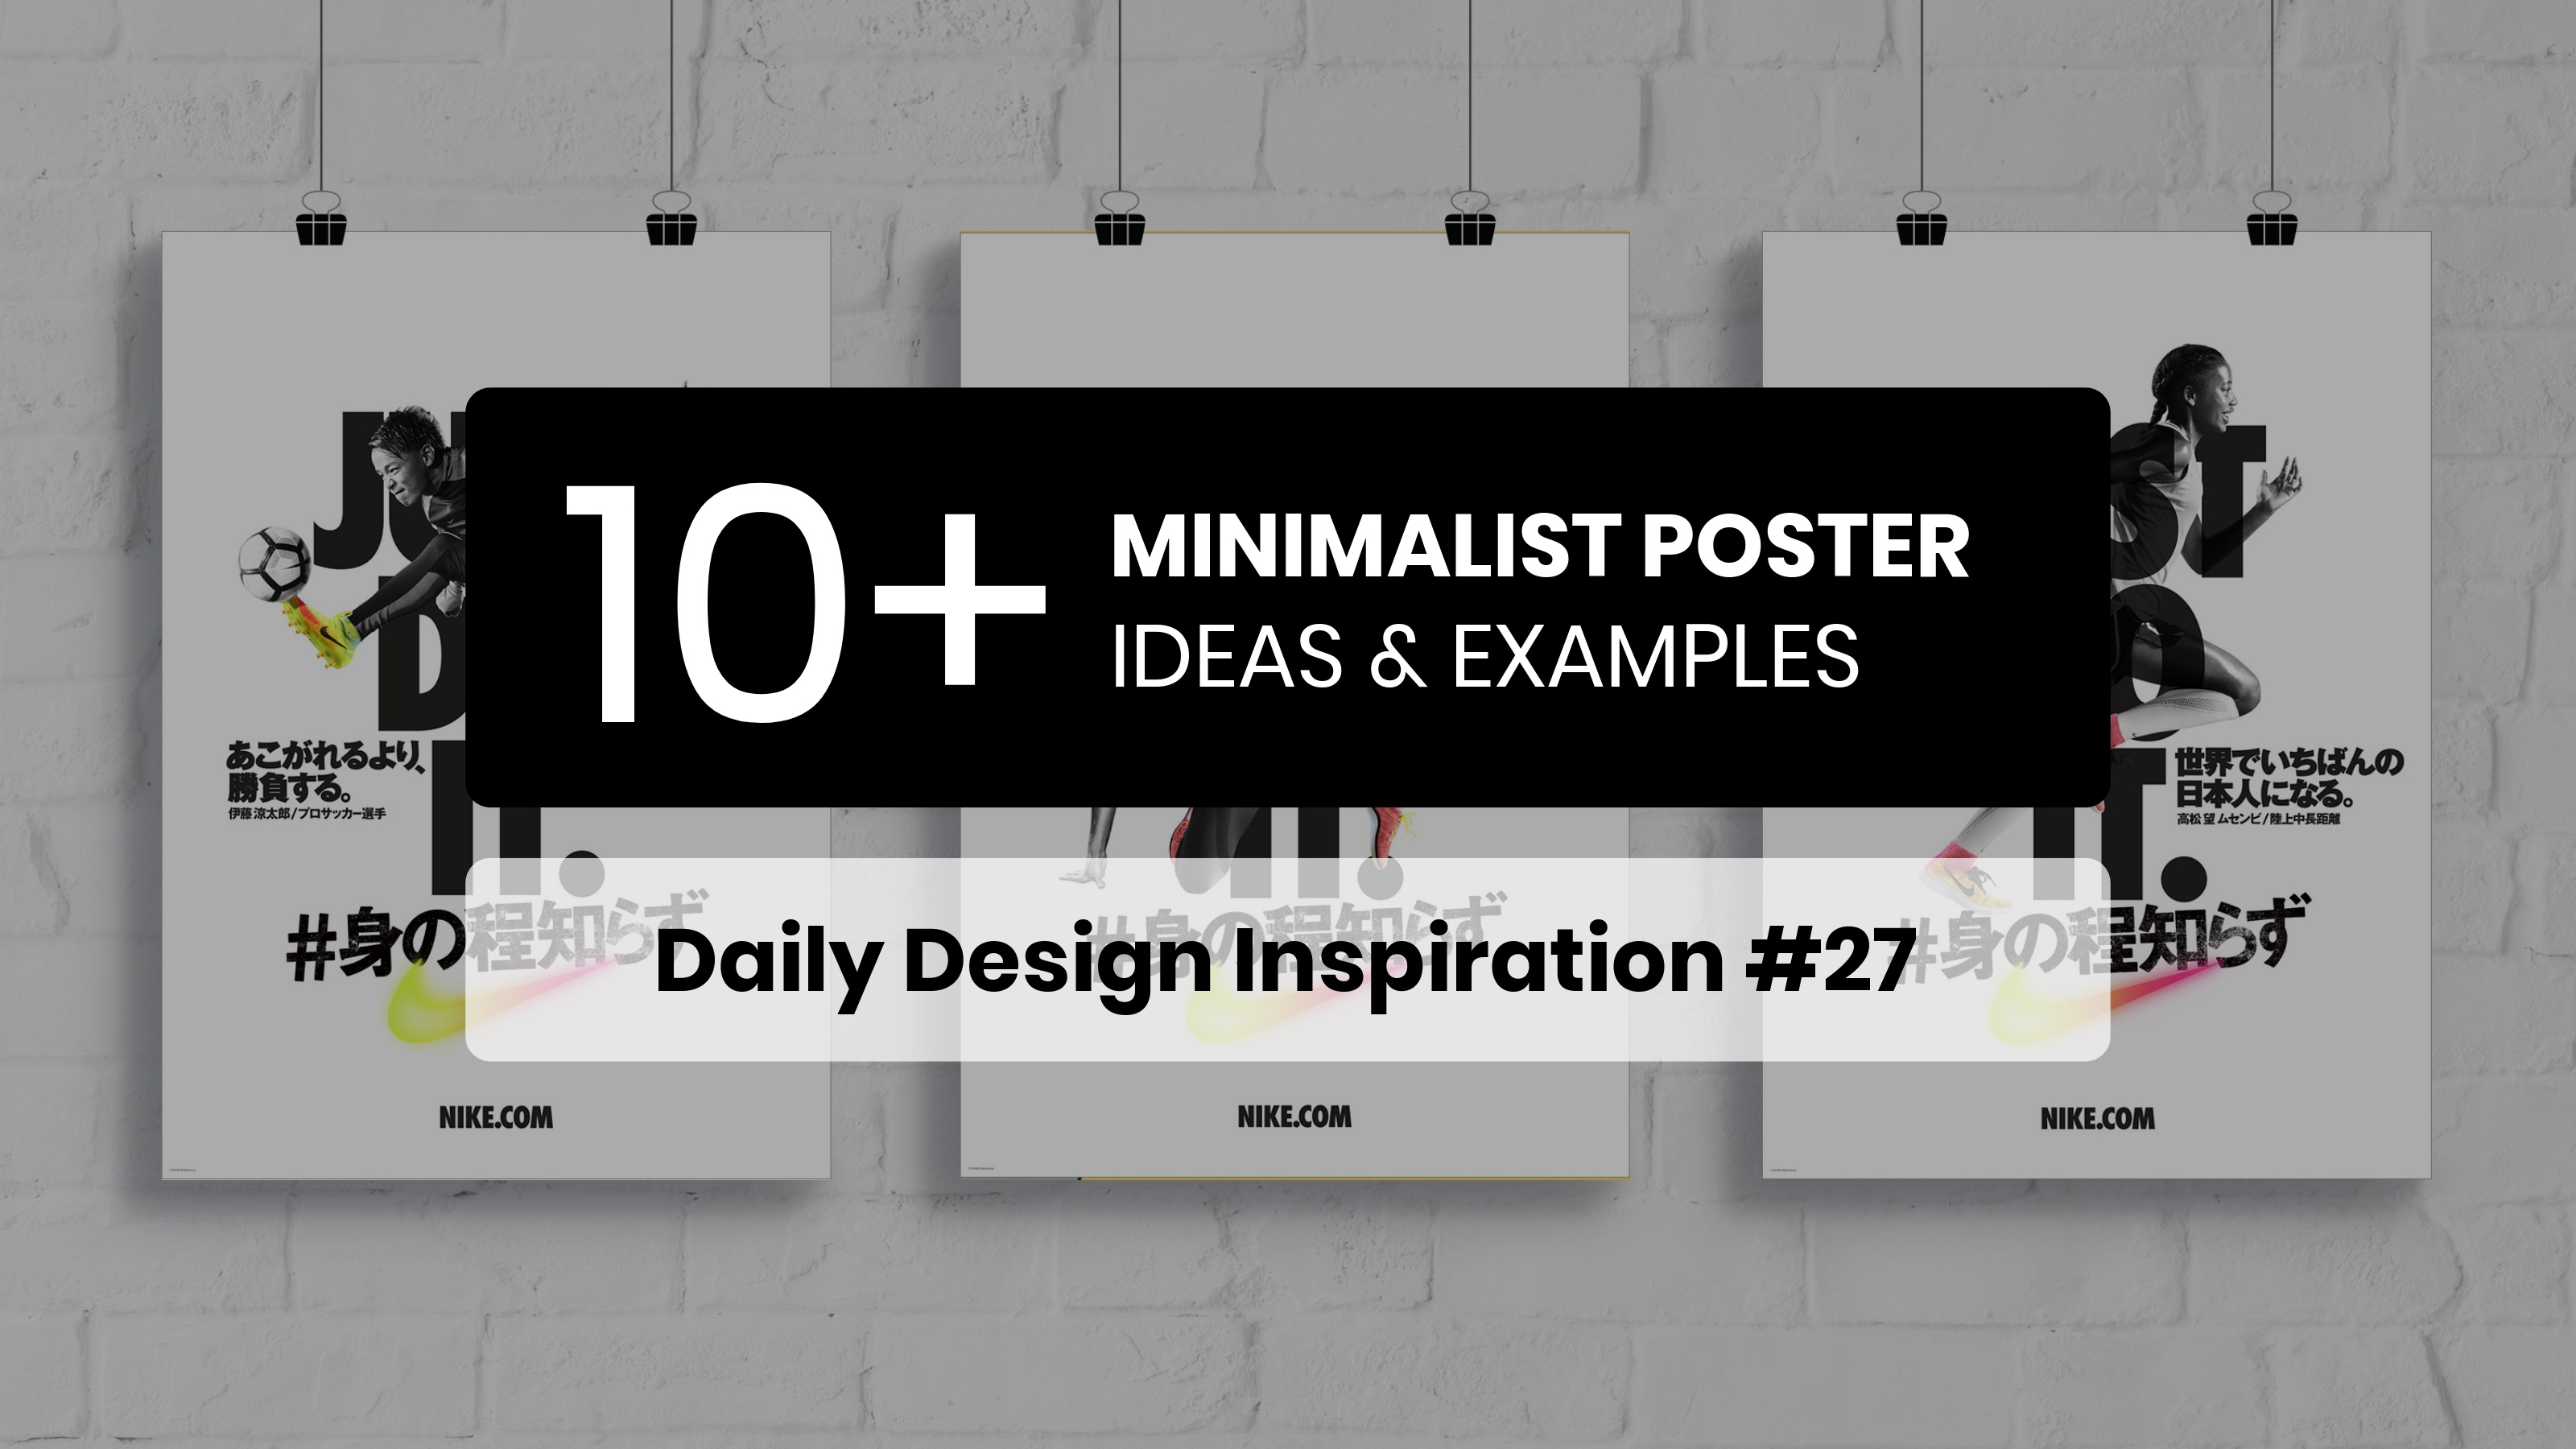 10+ Minimalist Poster Examples & Ideas – Daily Design Inspiration 27